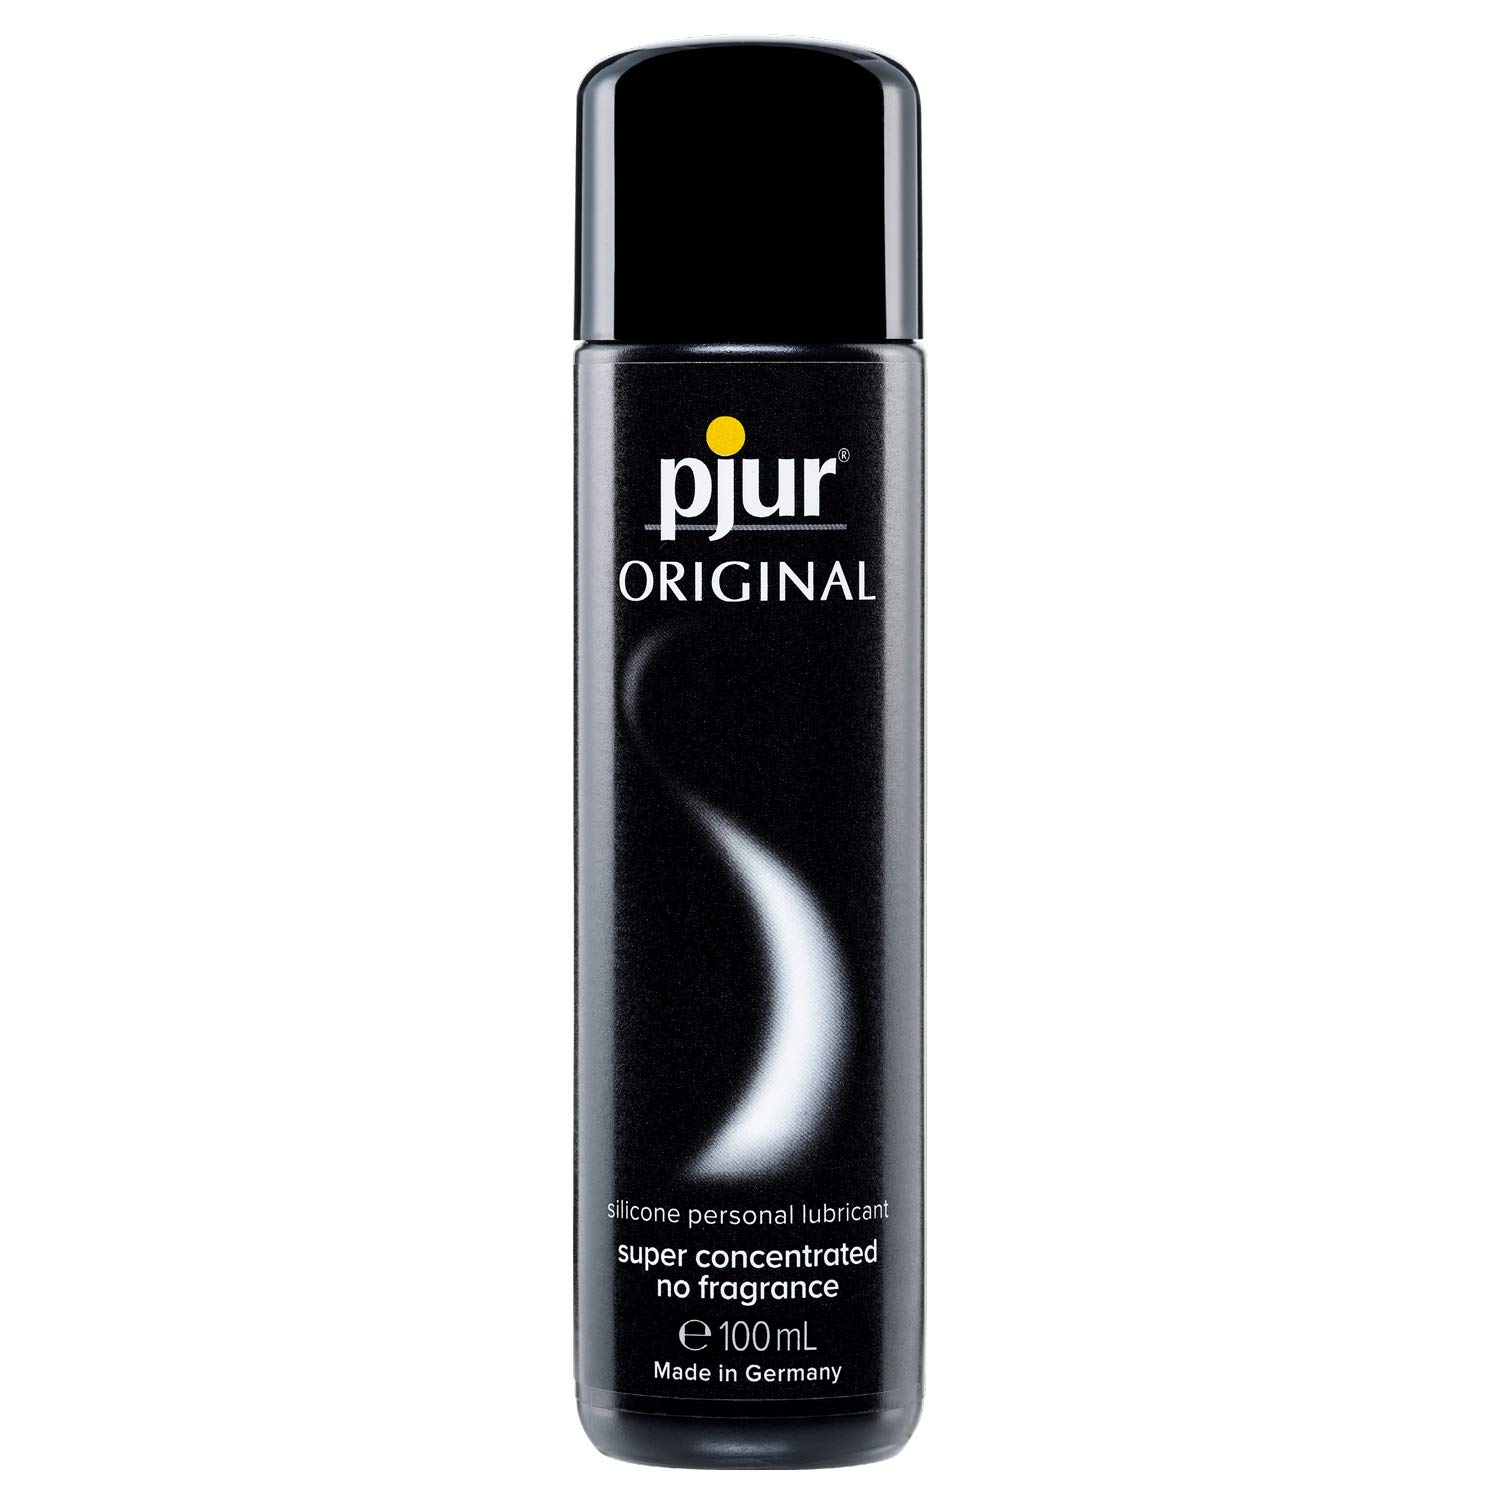 pjur Original - Premium Silicone Personal Lubricant - Long-Lasting and Non-Sticky - Very efficient and Compatible with Condoms (100ml)